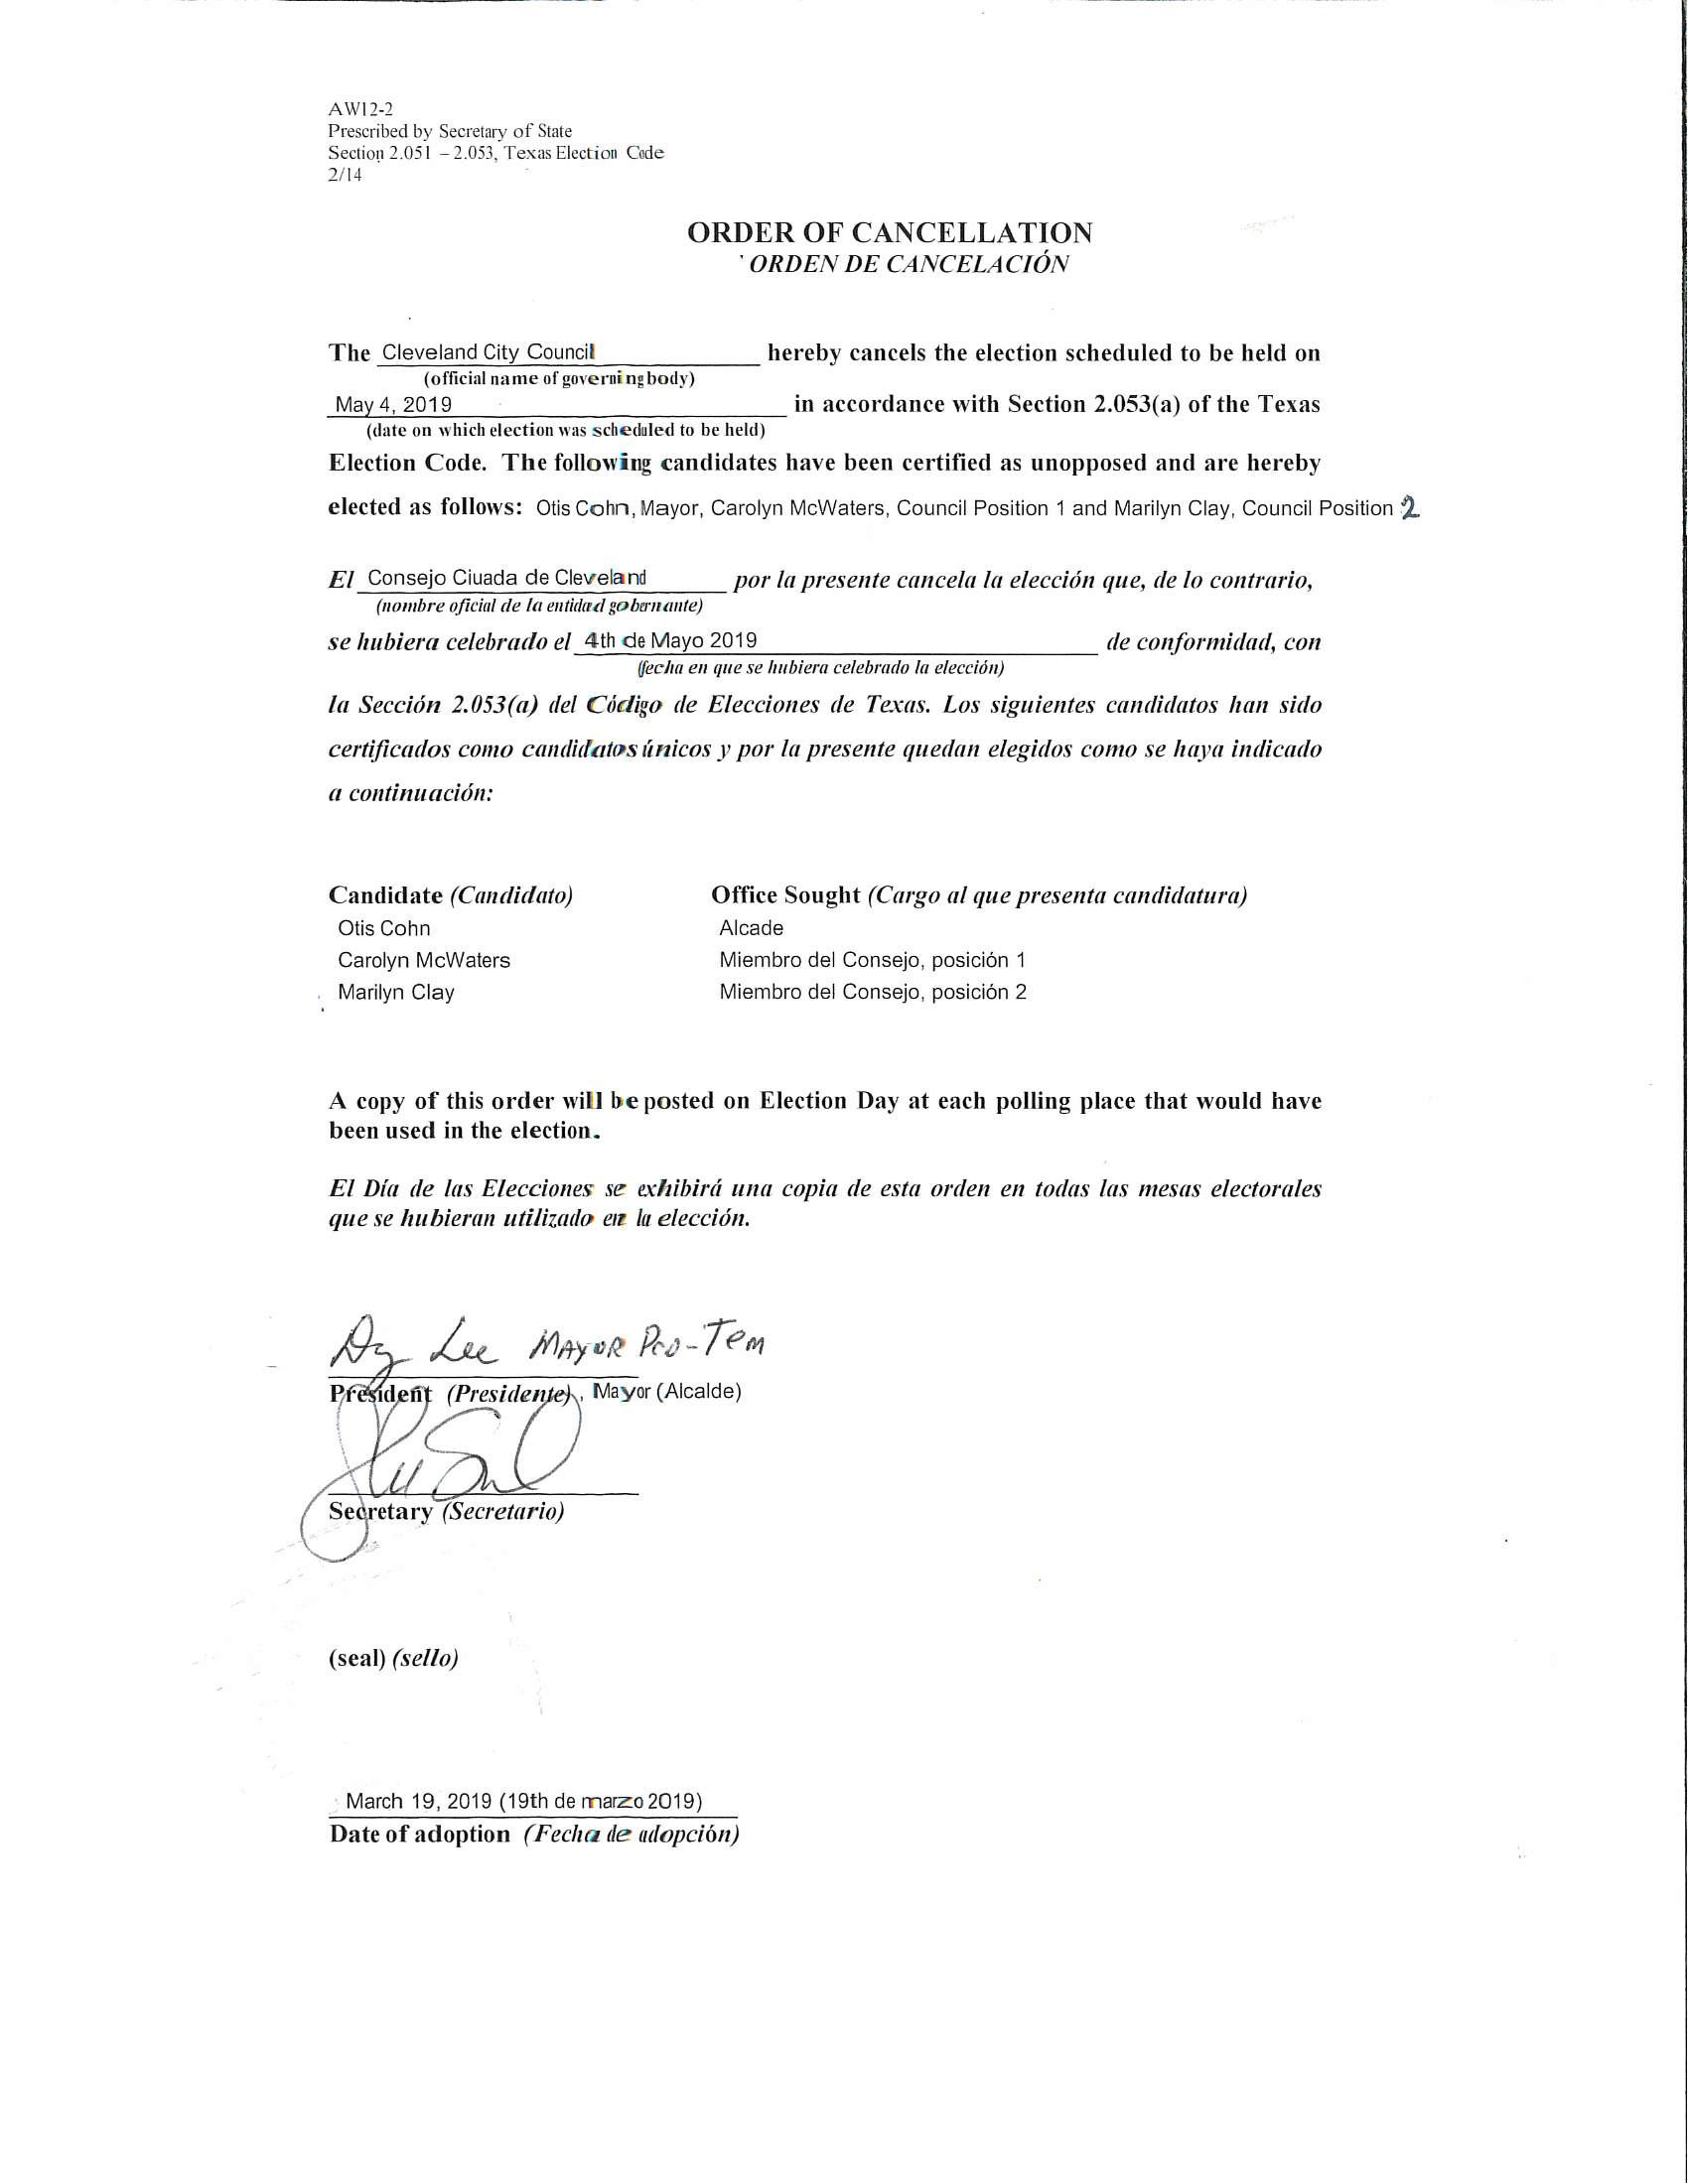 Order of cancellation 2019 signed